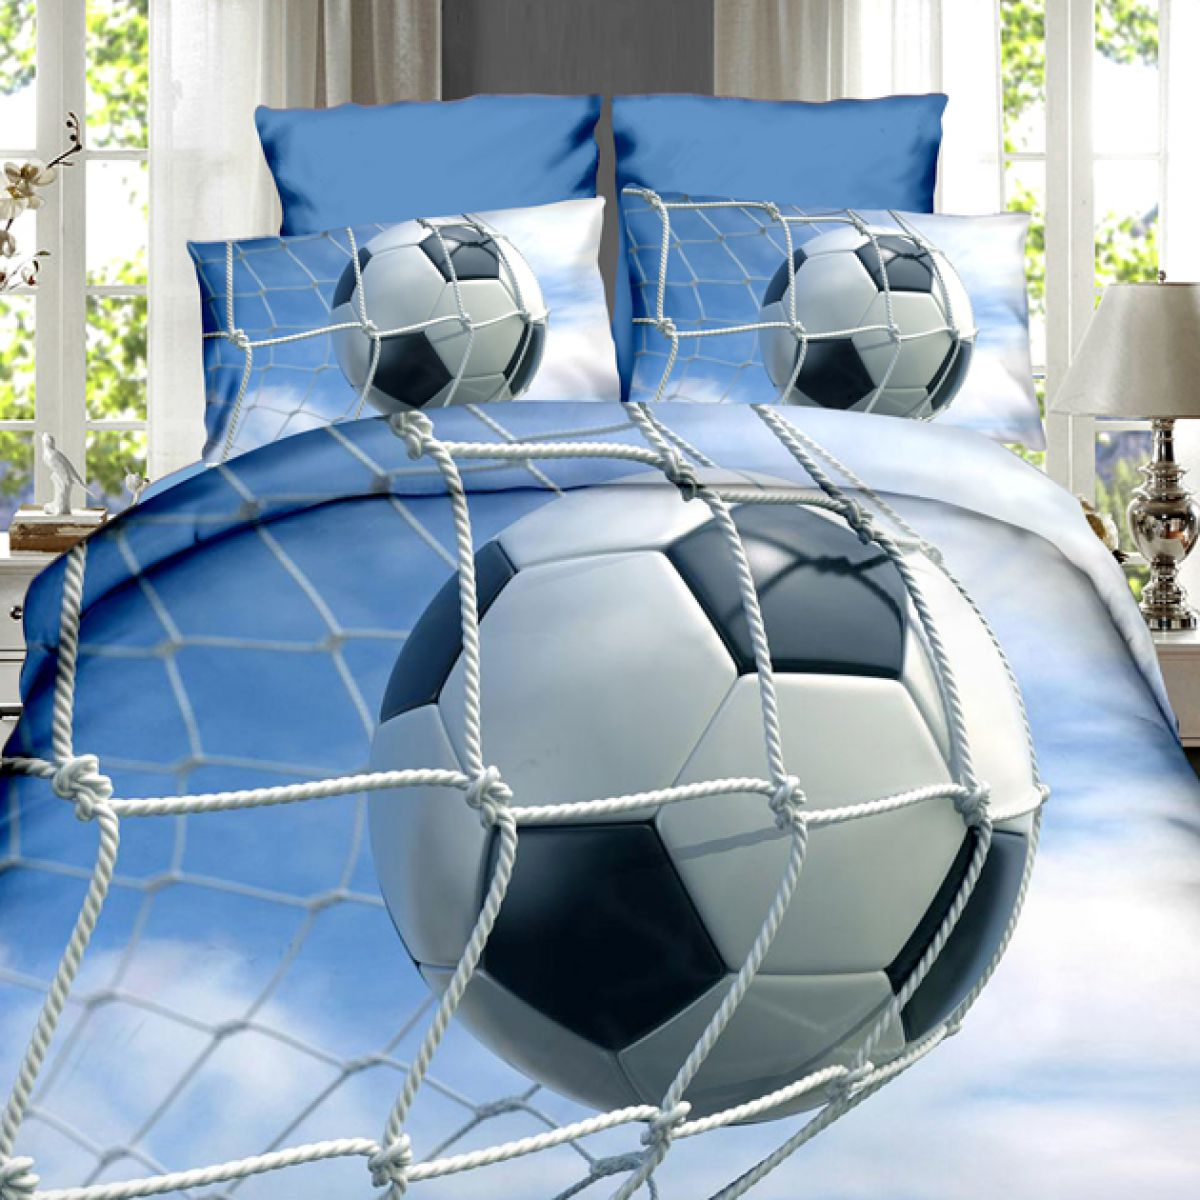 3D Beddings - Antonio - AML-47 - 160x200 cm - 4 pcs